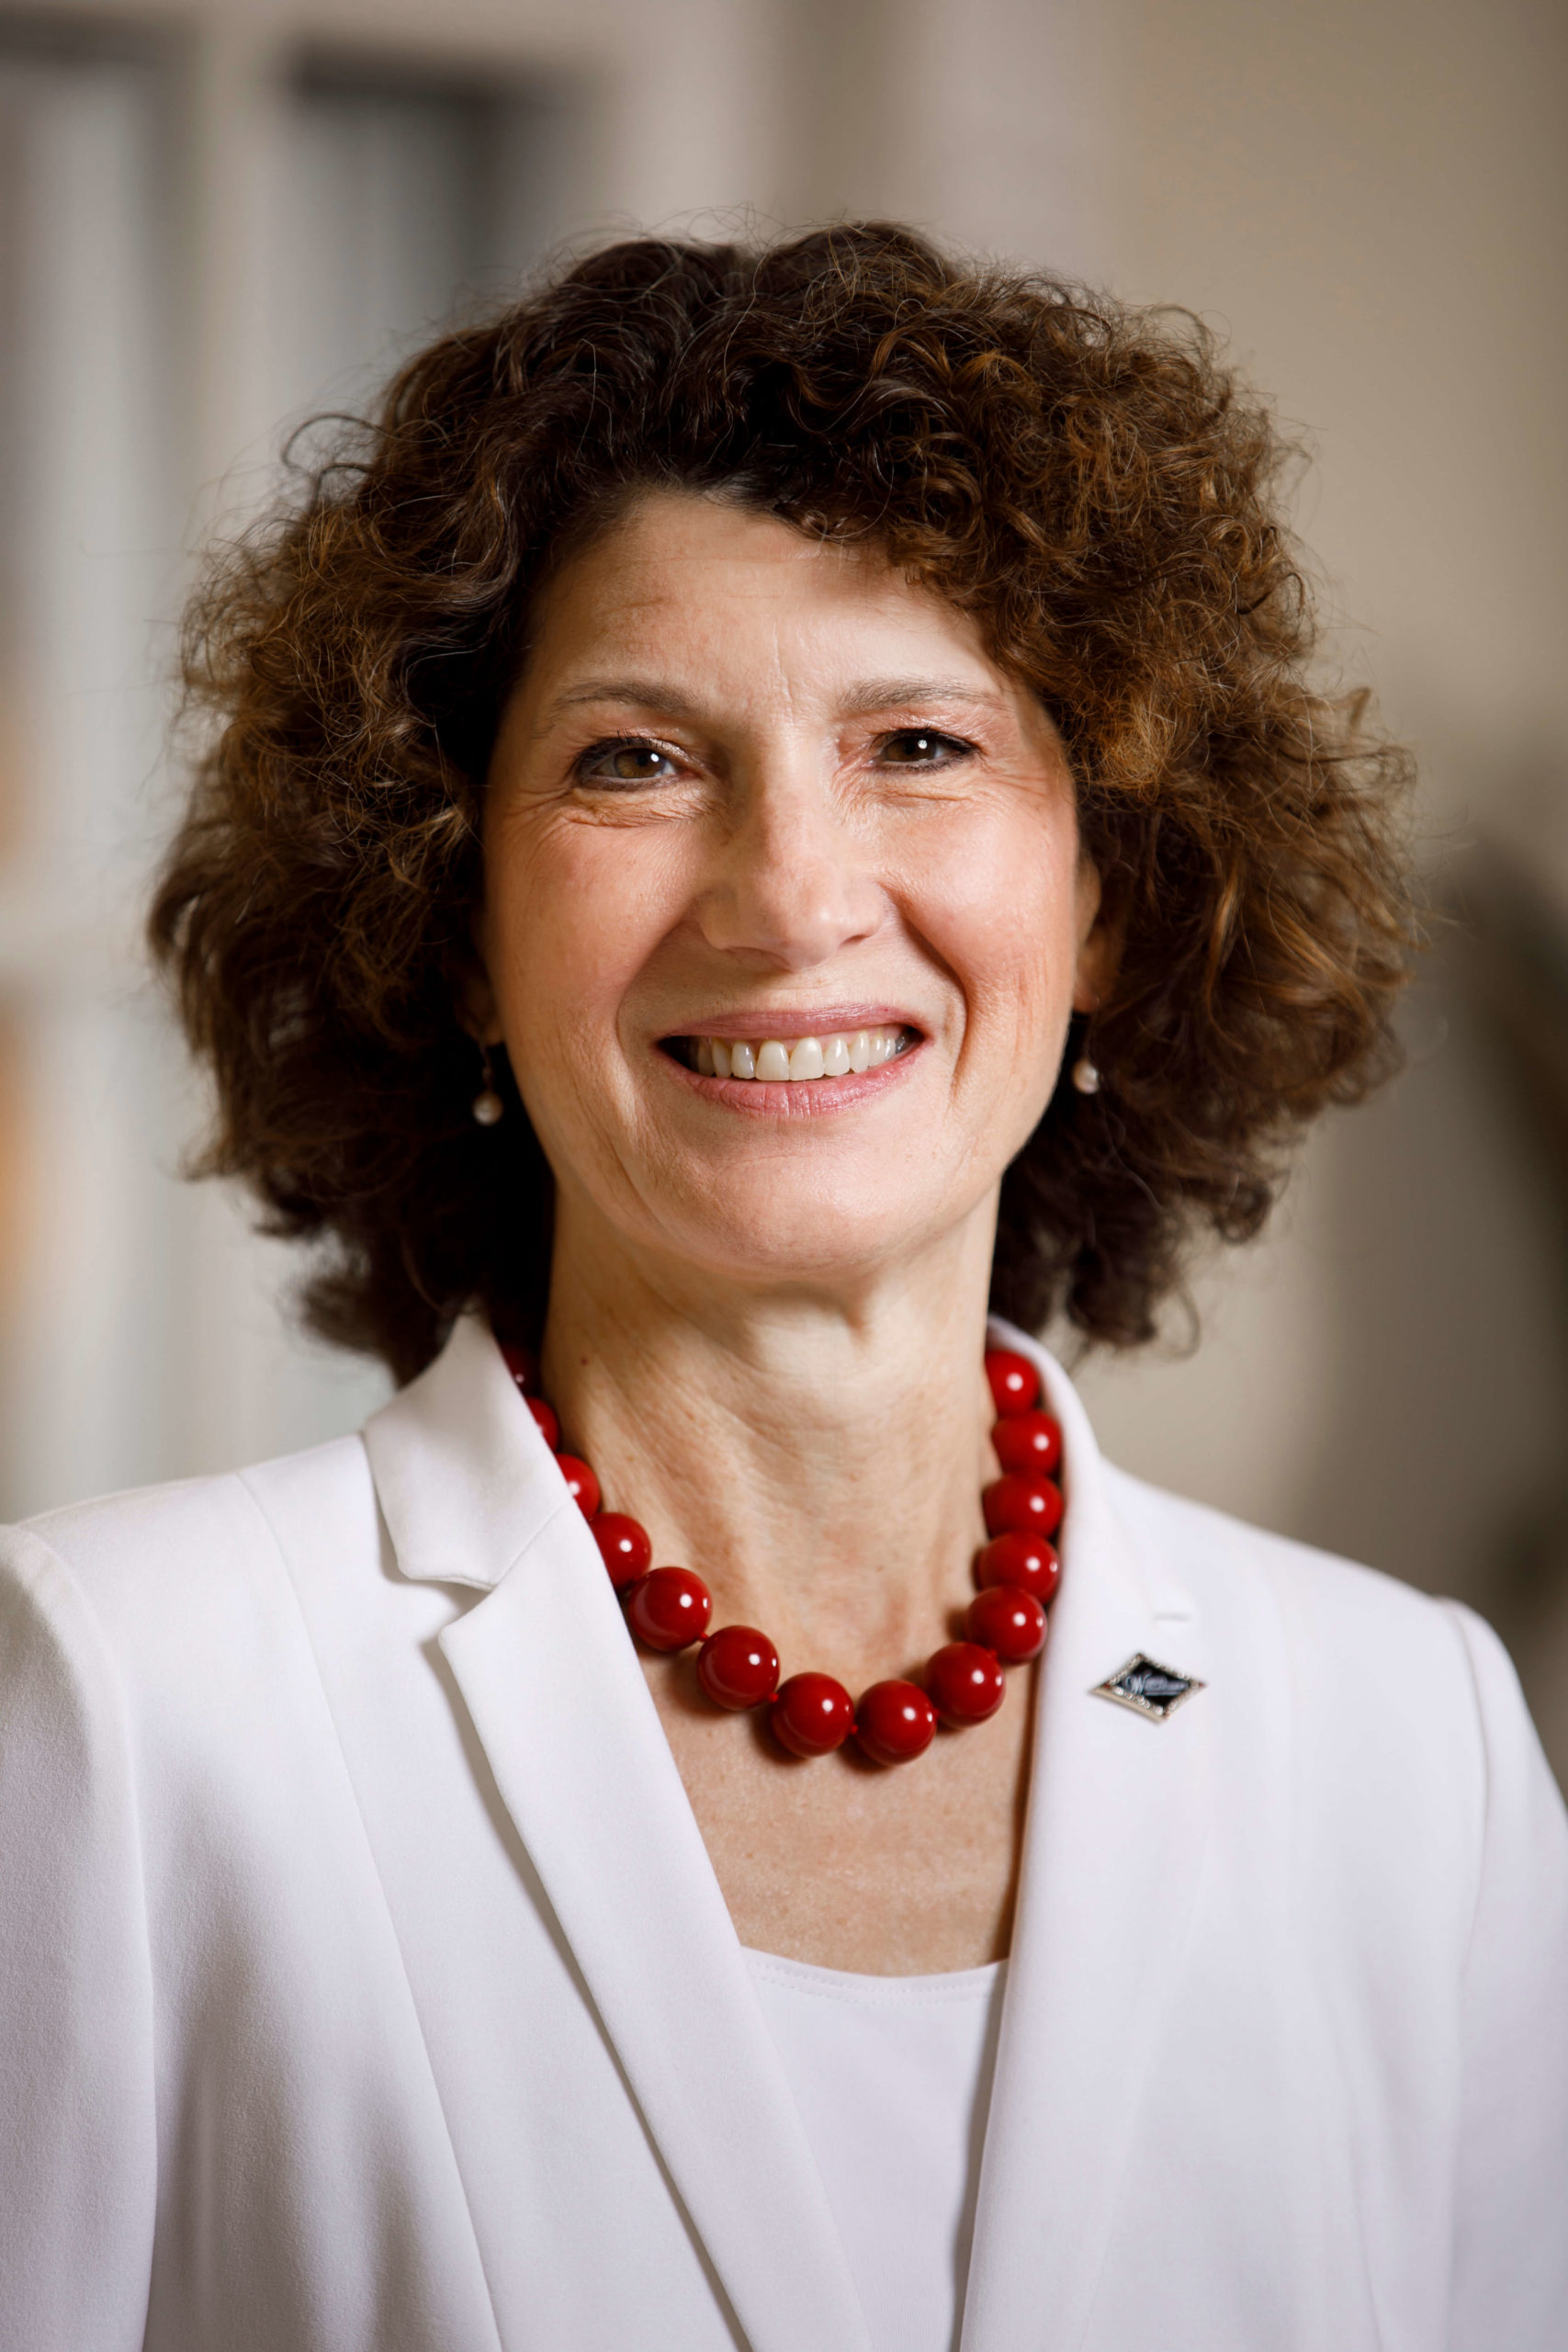 Laurie Burns-McRobbie, First Lady for Indiana University